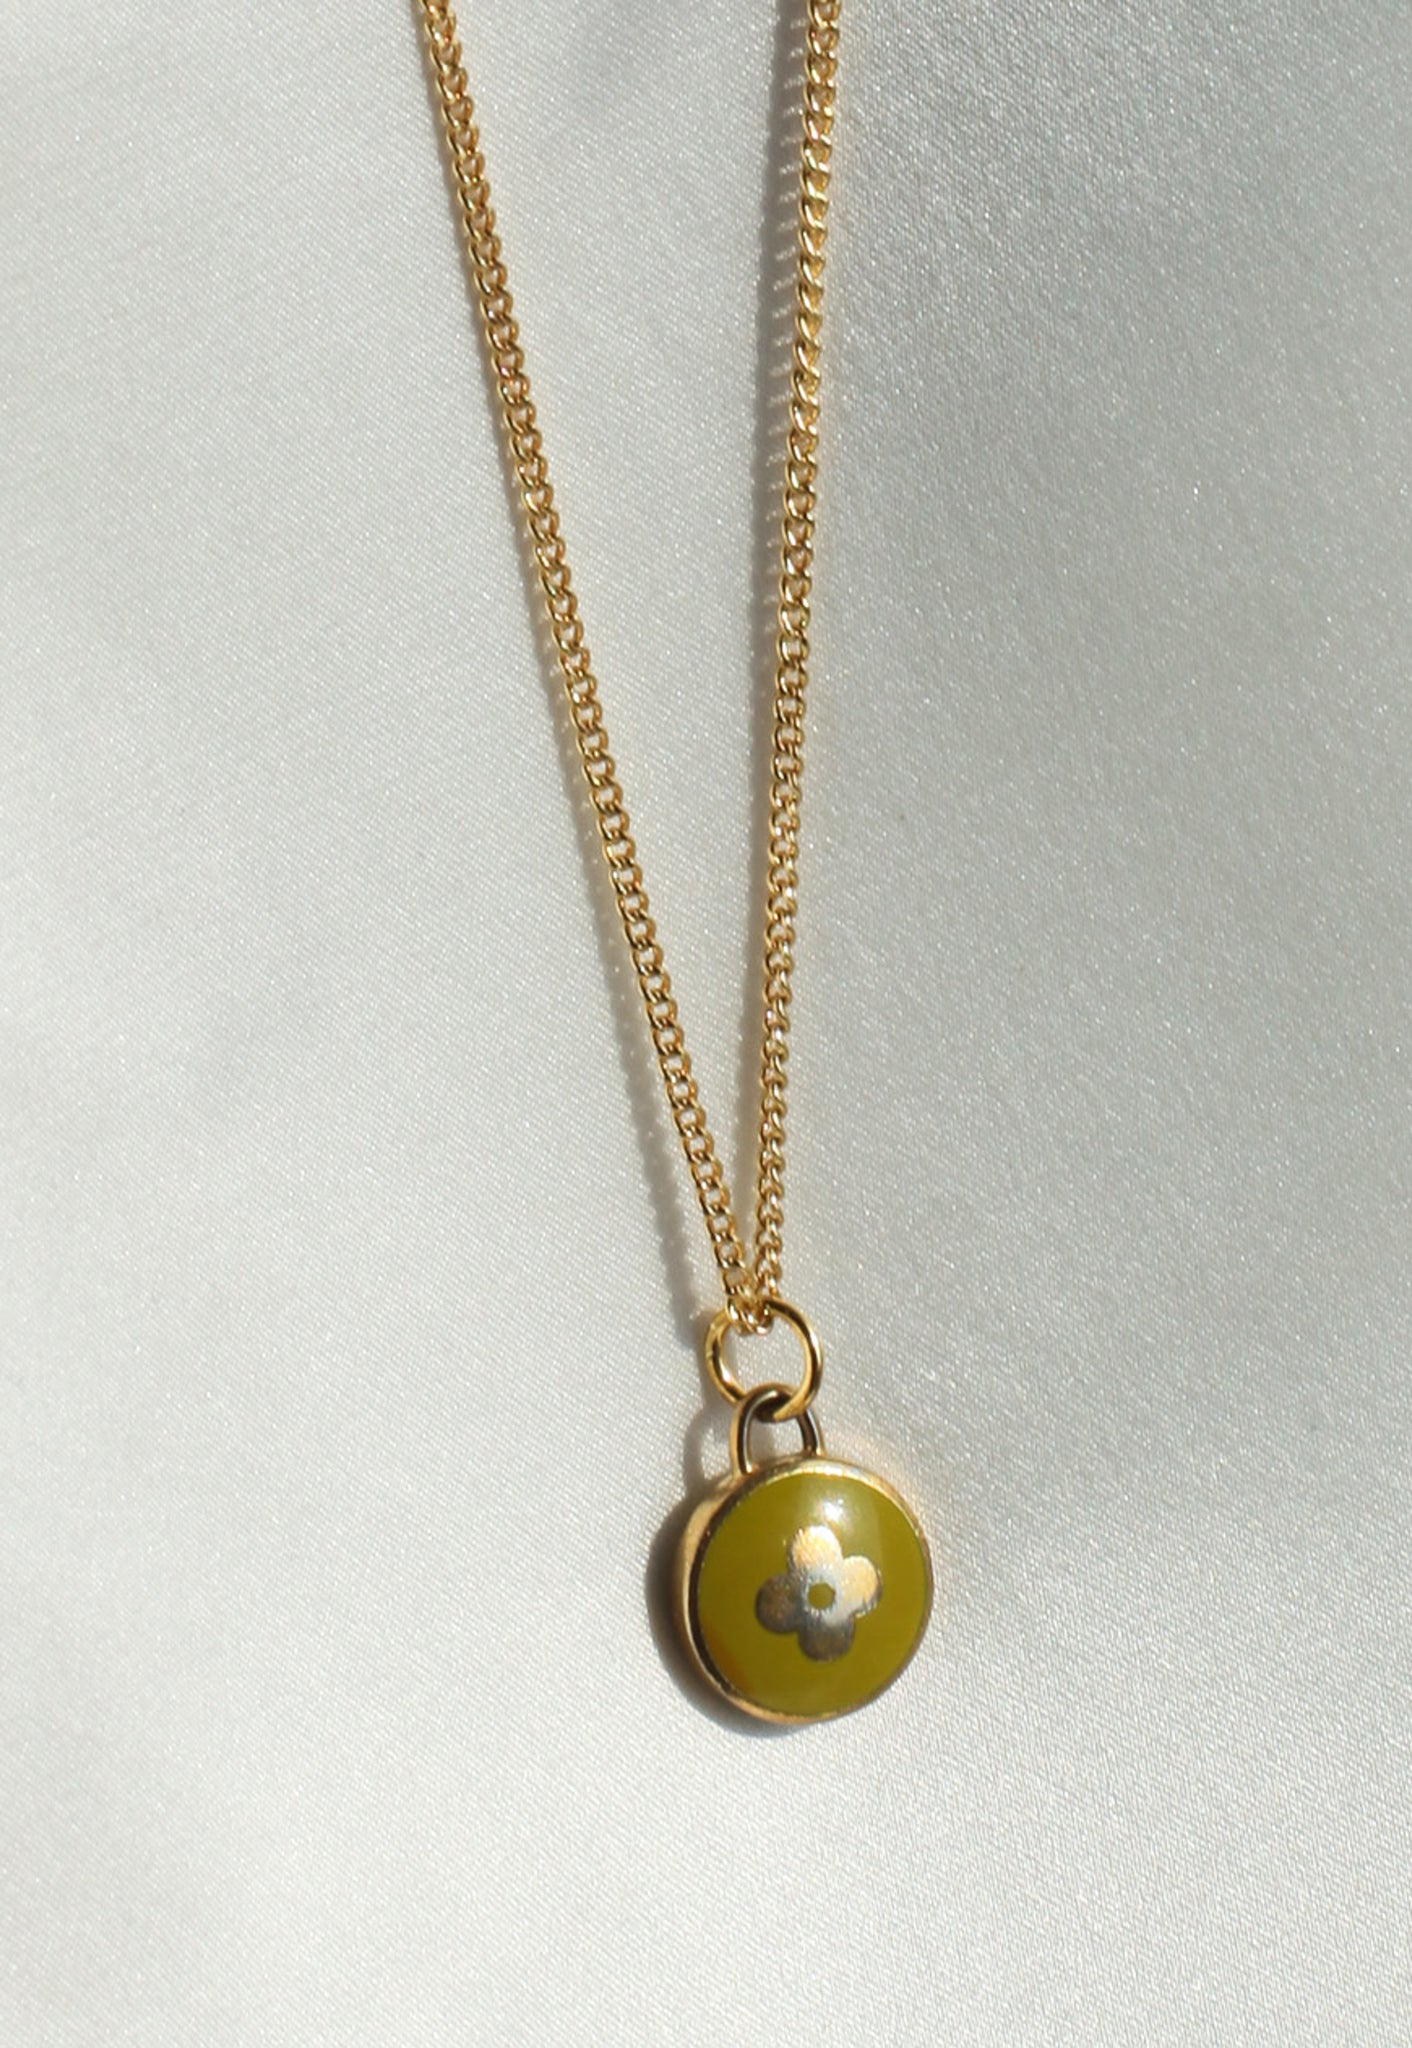 Reworked Louis Vuitton Lime Flower Pendant Necklace